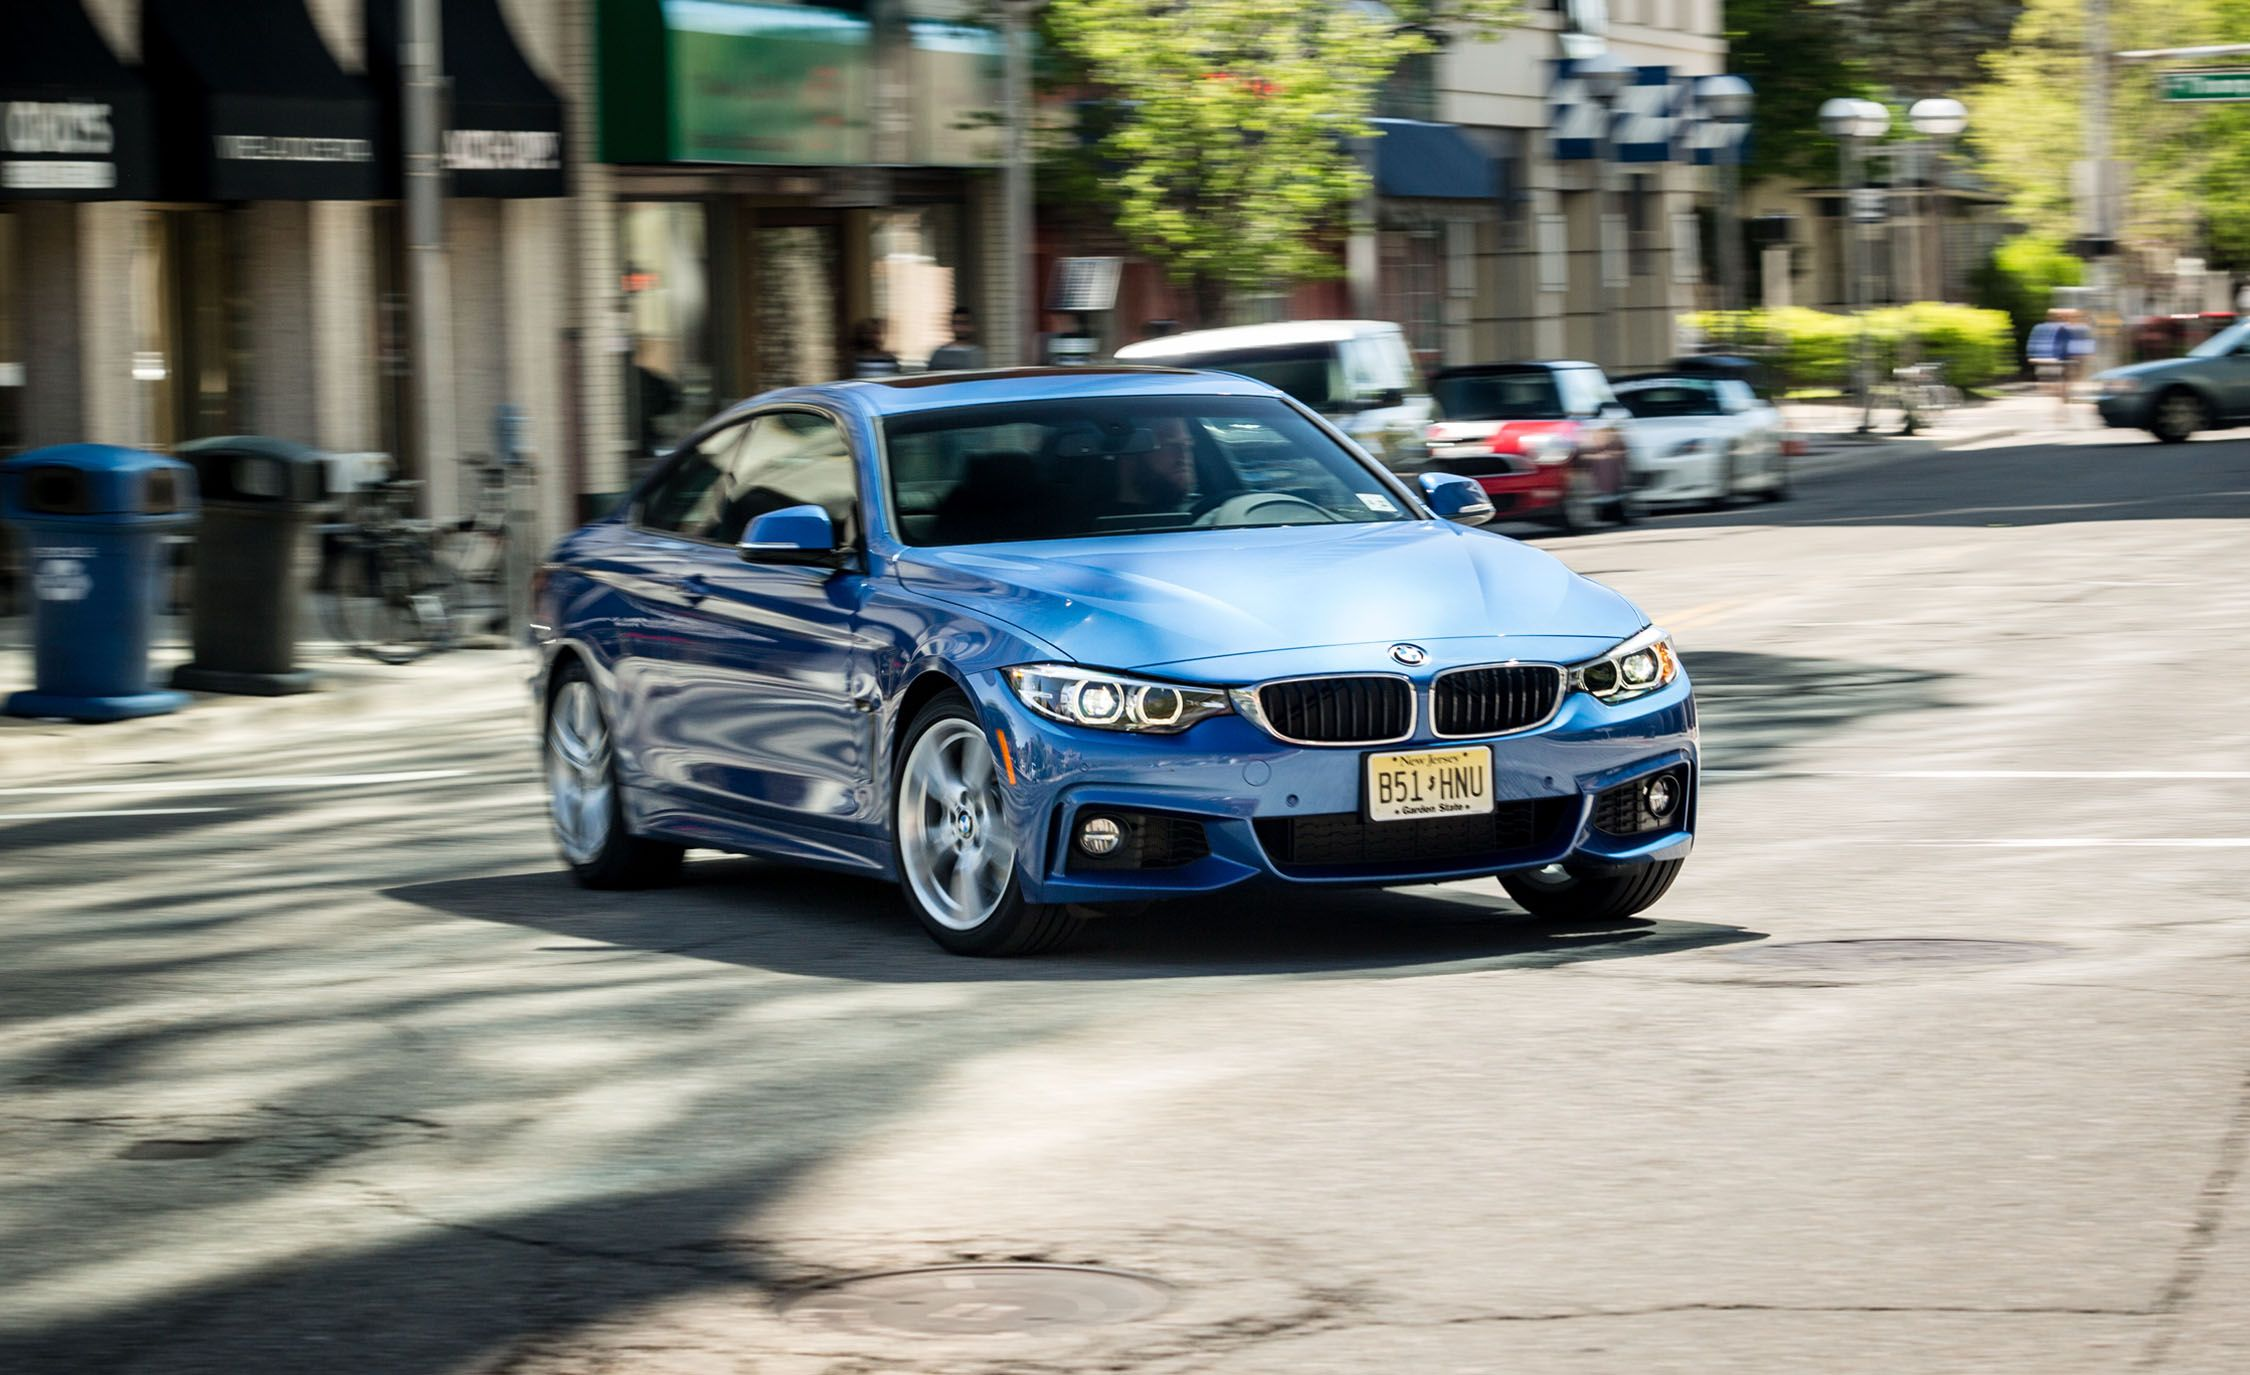 2018 Bmw 4 Series In Depth Model Review Car And Driver HD Wallpapers Download free images and photos [musssic.tk]